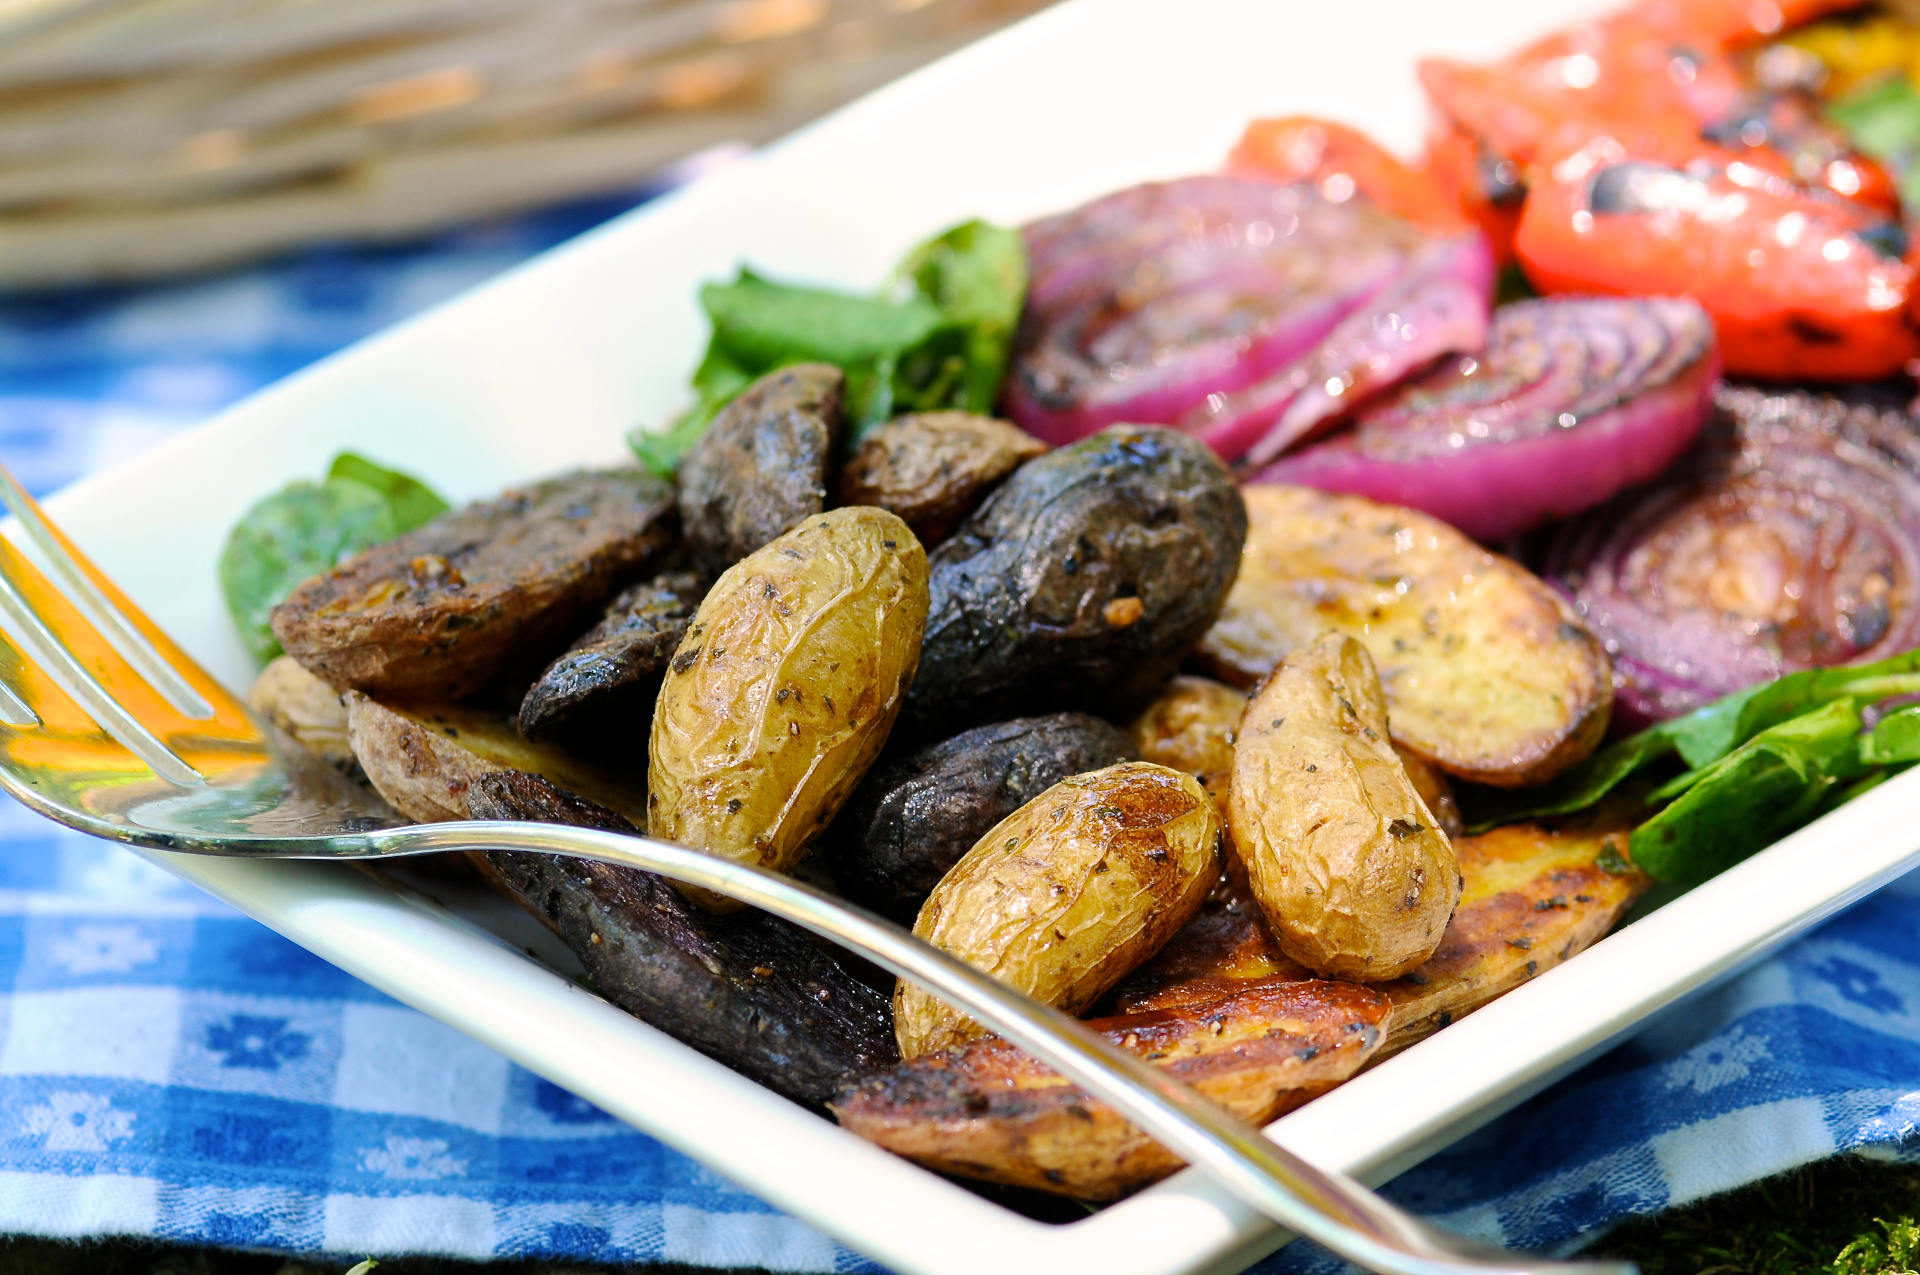 Rosemary Roasted Potatoes with Grilled Peppers and Onions